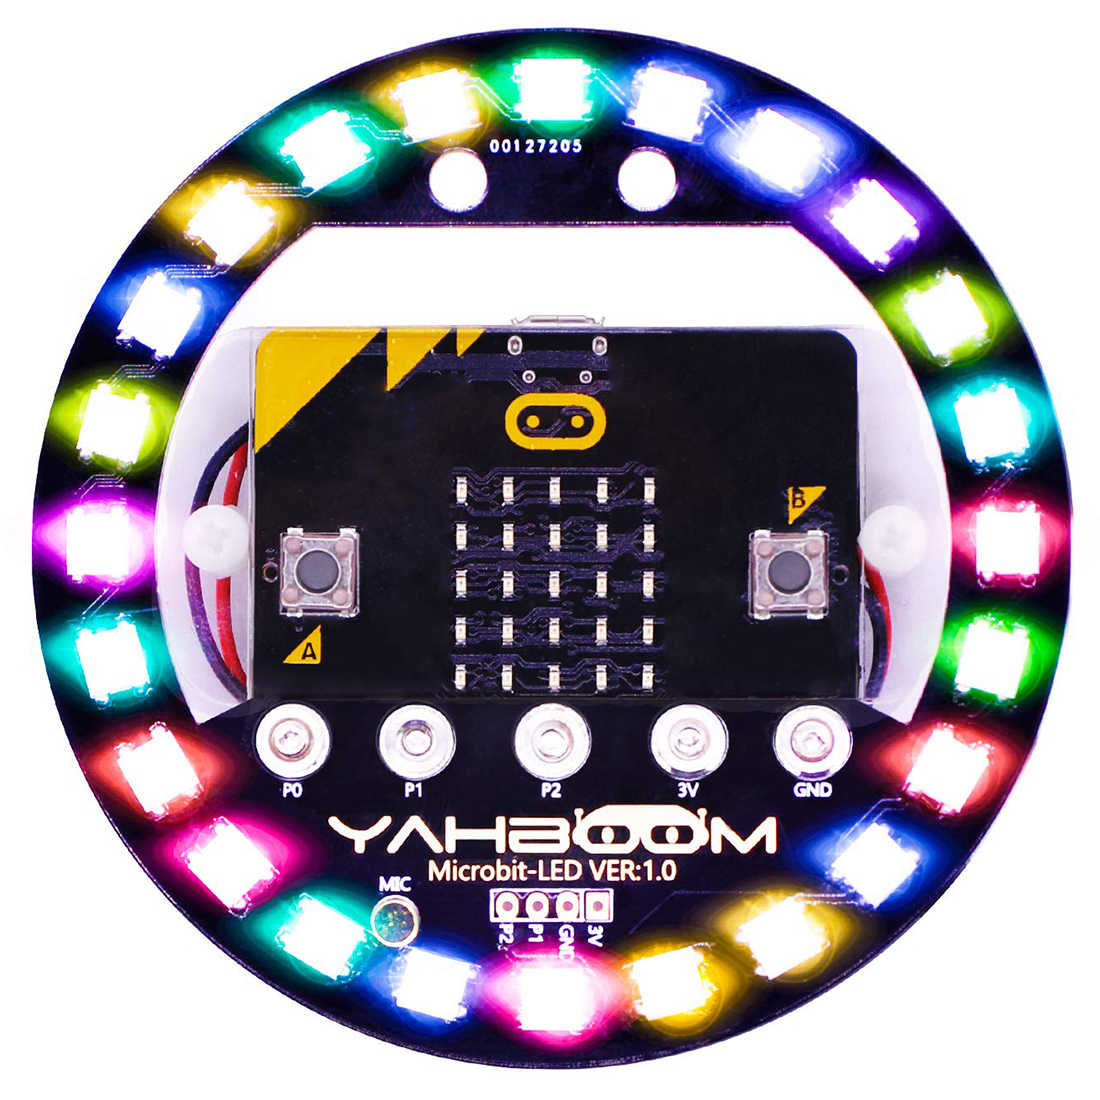 Micro:bit Halo Programmable Expansion Board Compatible with